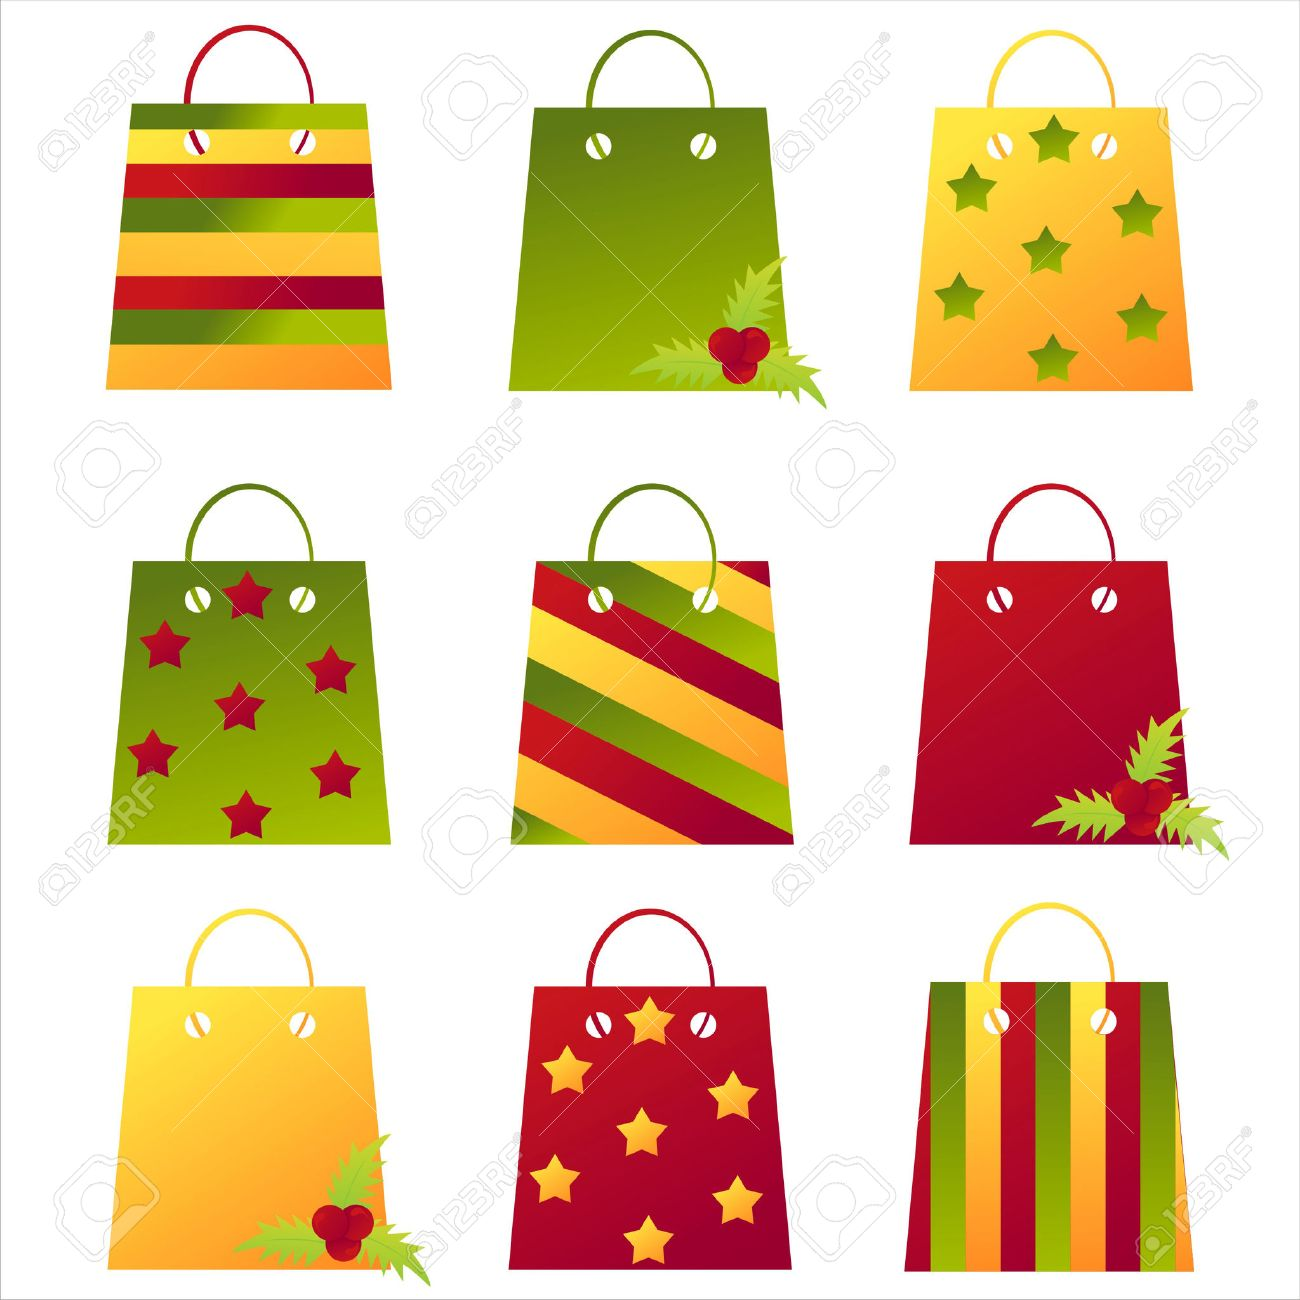 Set Of 9 Christmas Shopping Bags Royalty Free Cliparts, Vectors ...